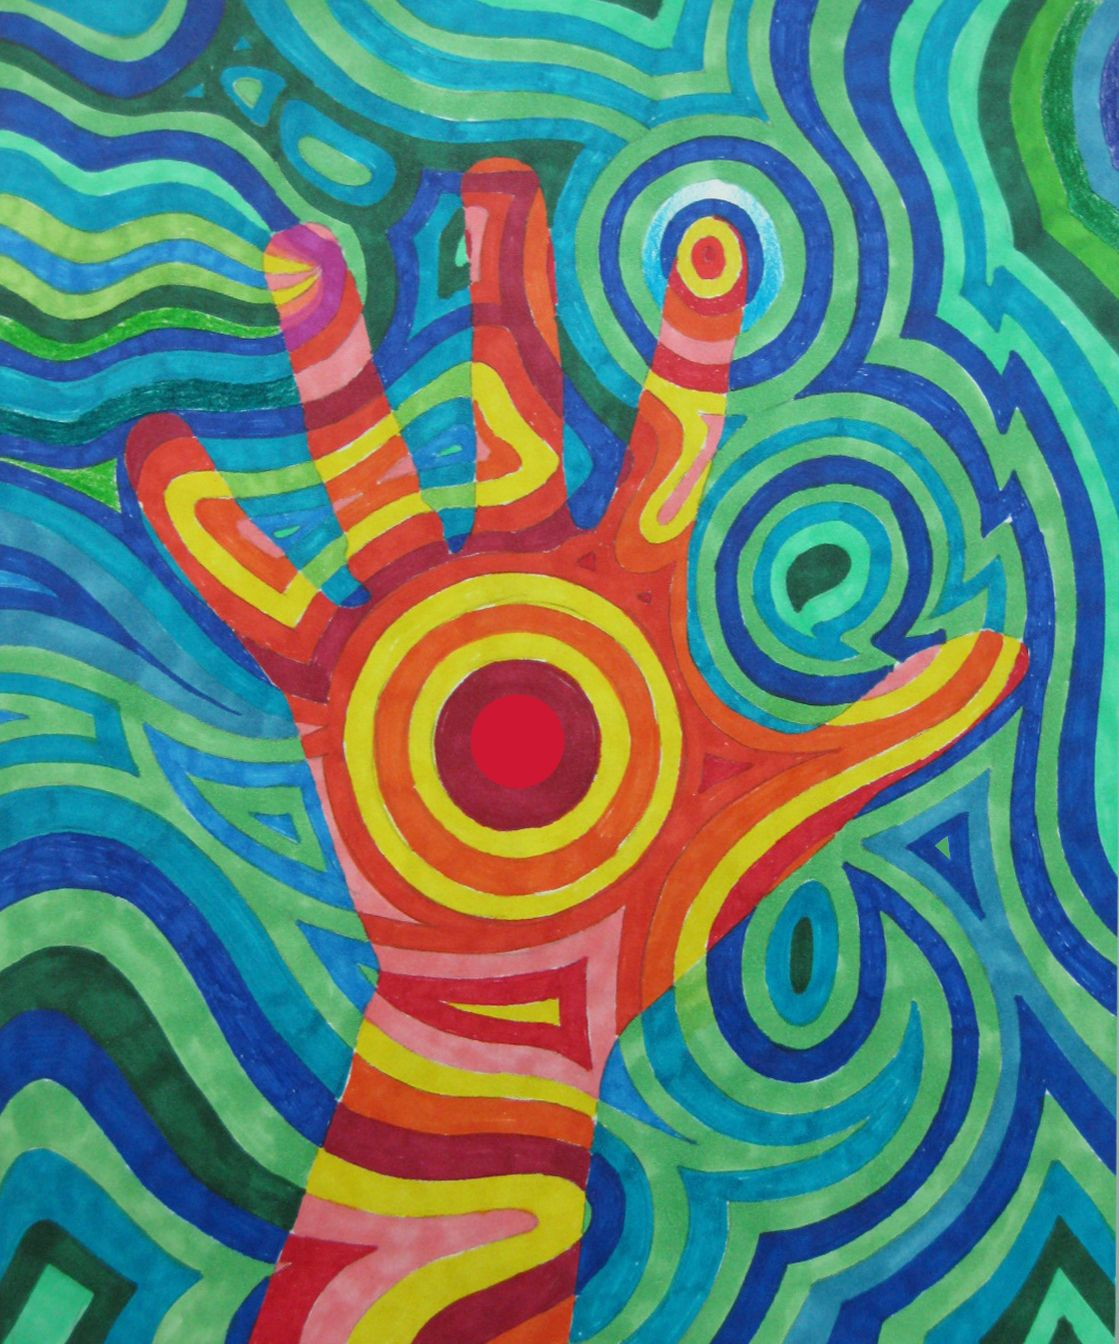 the role of color in the art Although some may regard art education as a luxury, simple creative activities are some of the building blocks of child development learn more about the developmental benefits of art.